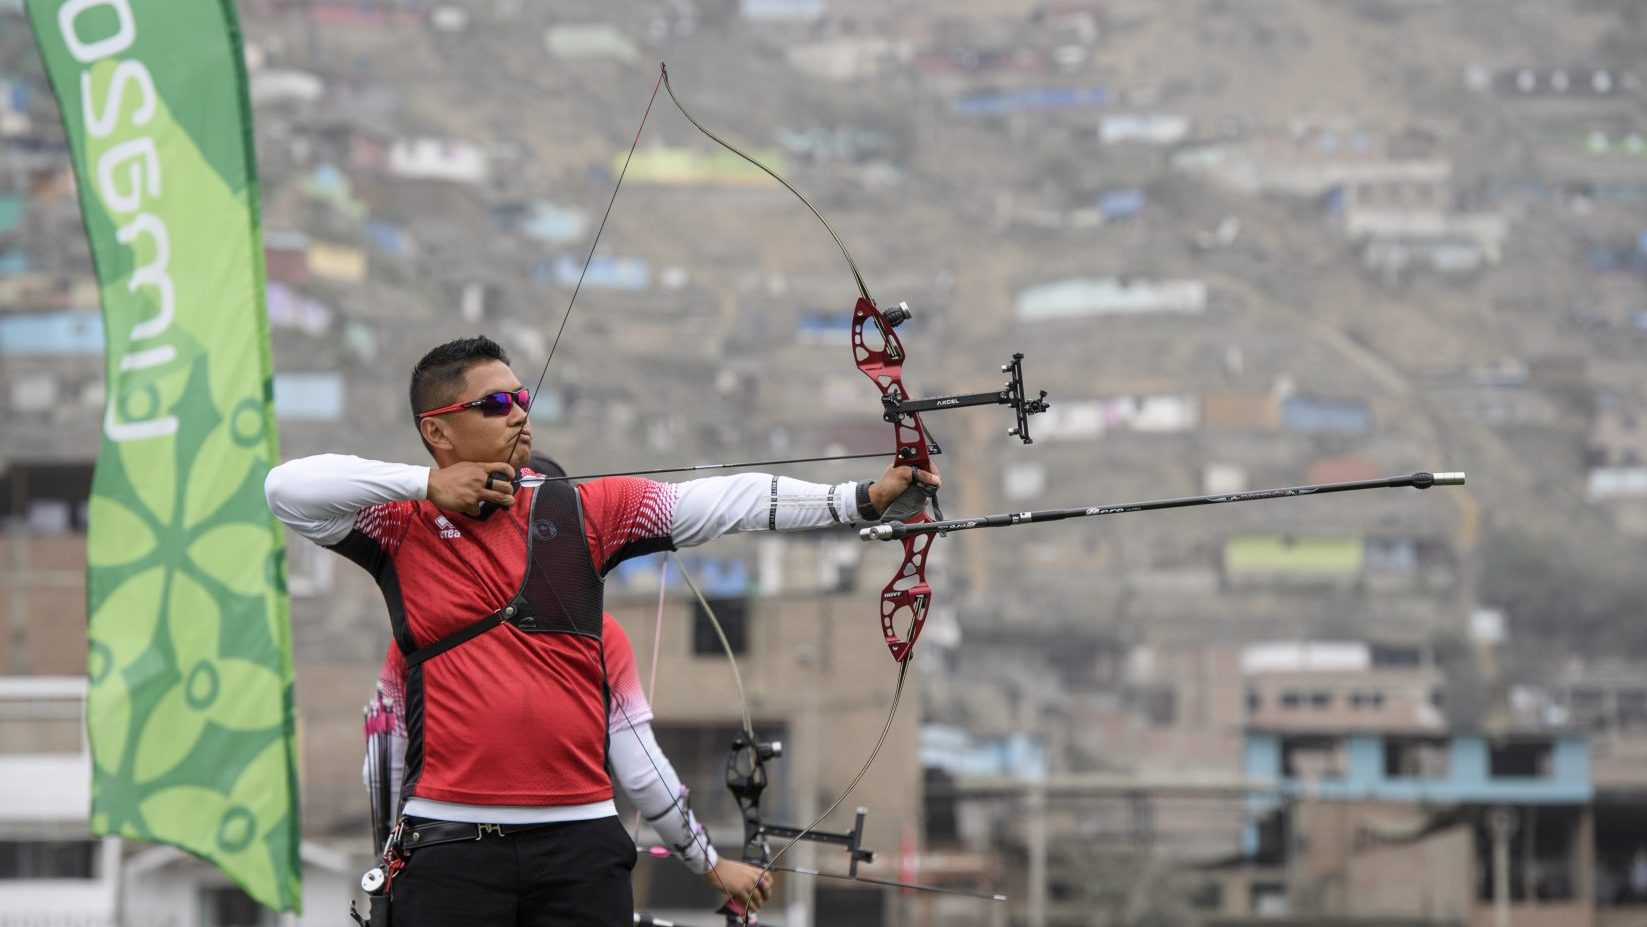 Crispin Duenas competes in archery at Lima 2019